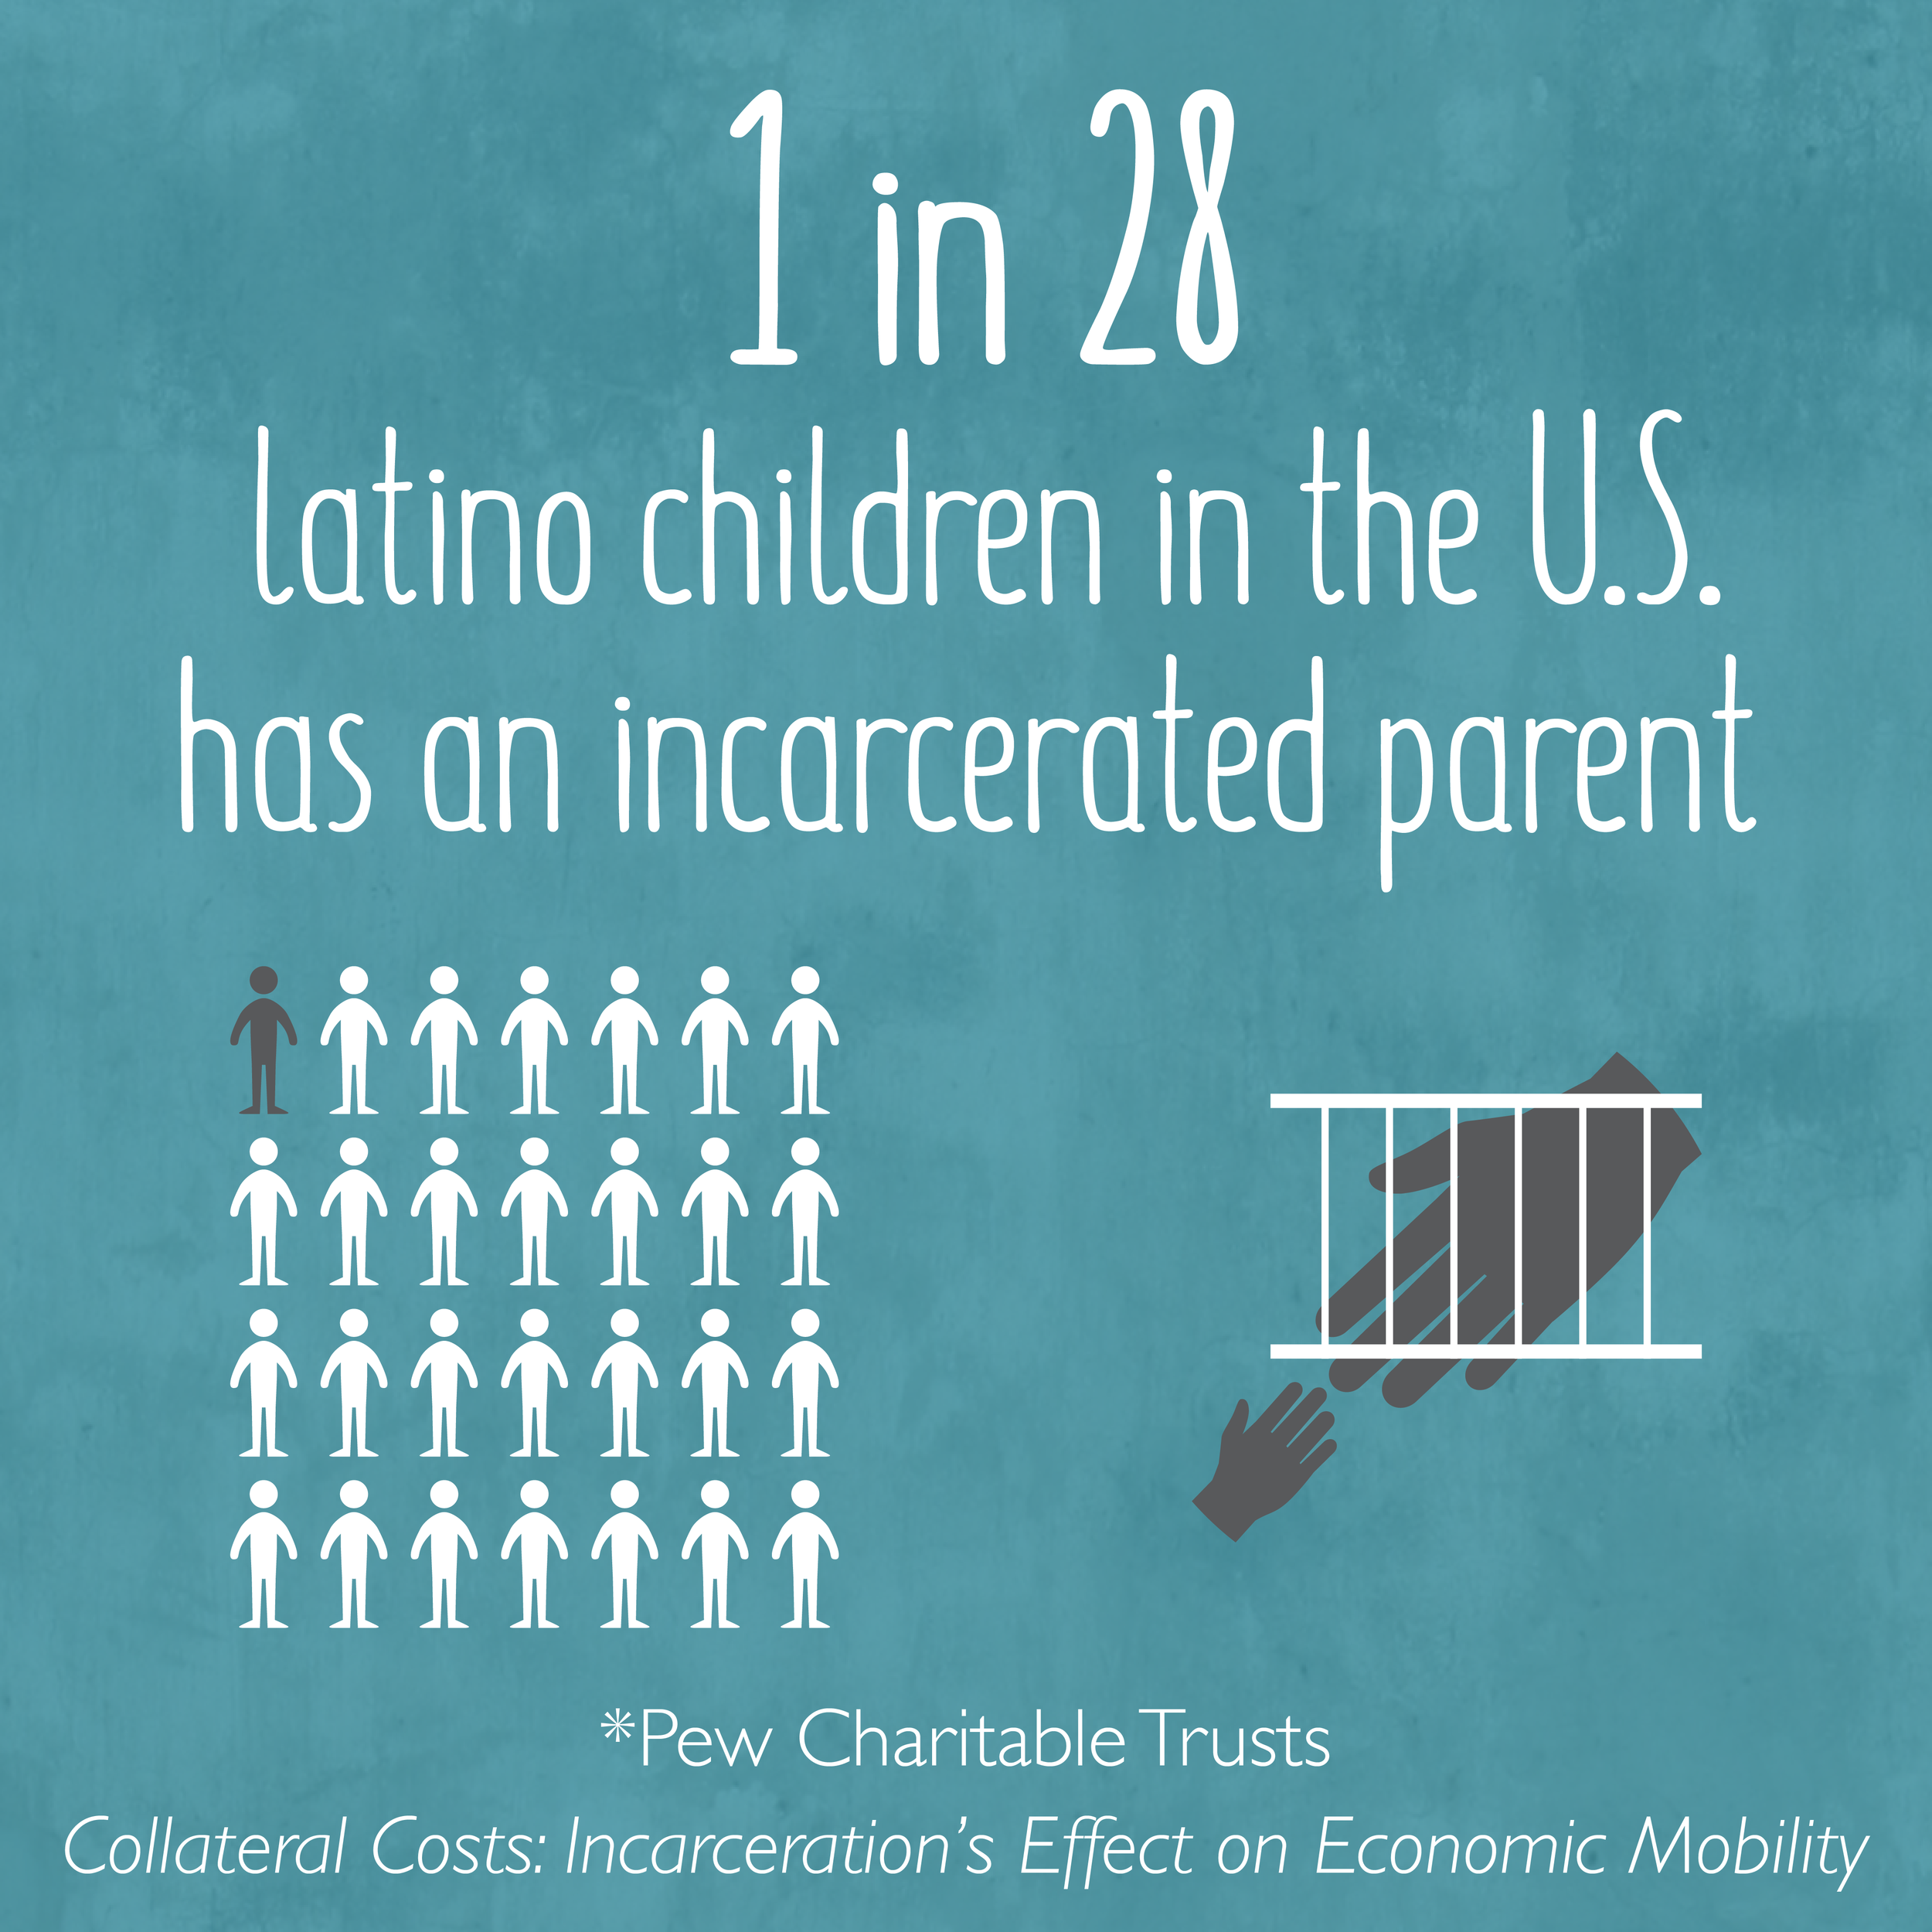 ITN Stats_Latino child_incarc parents.png